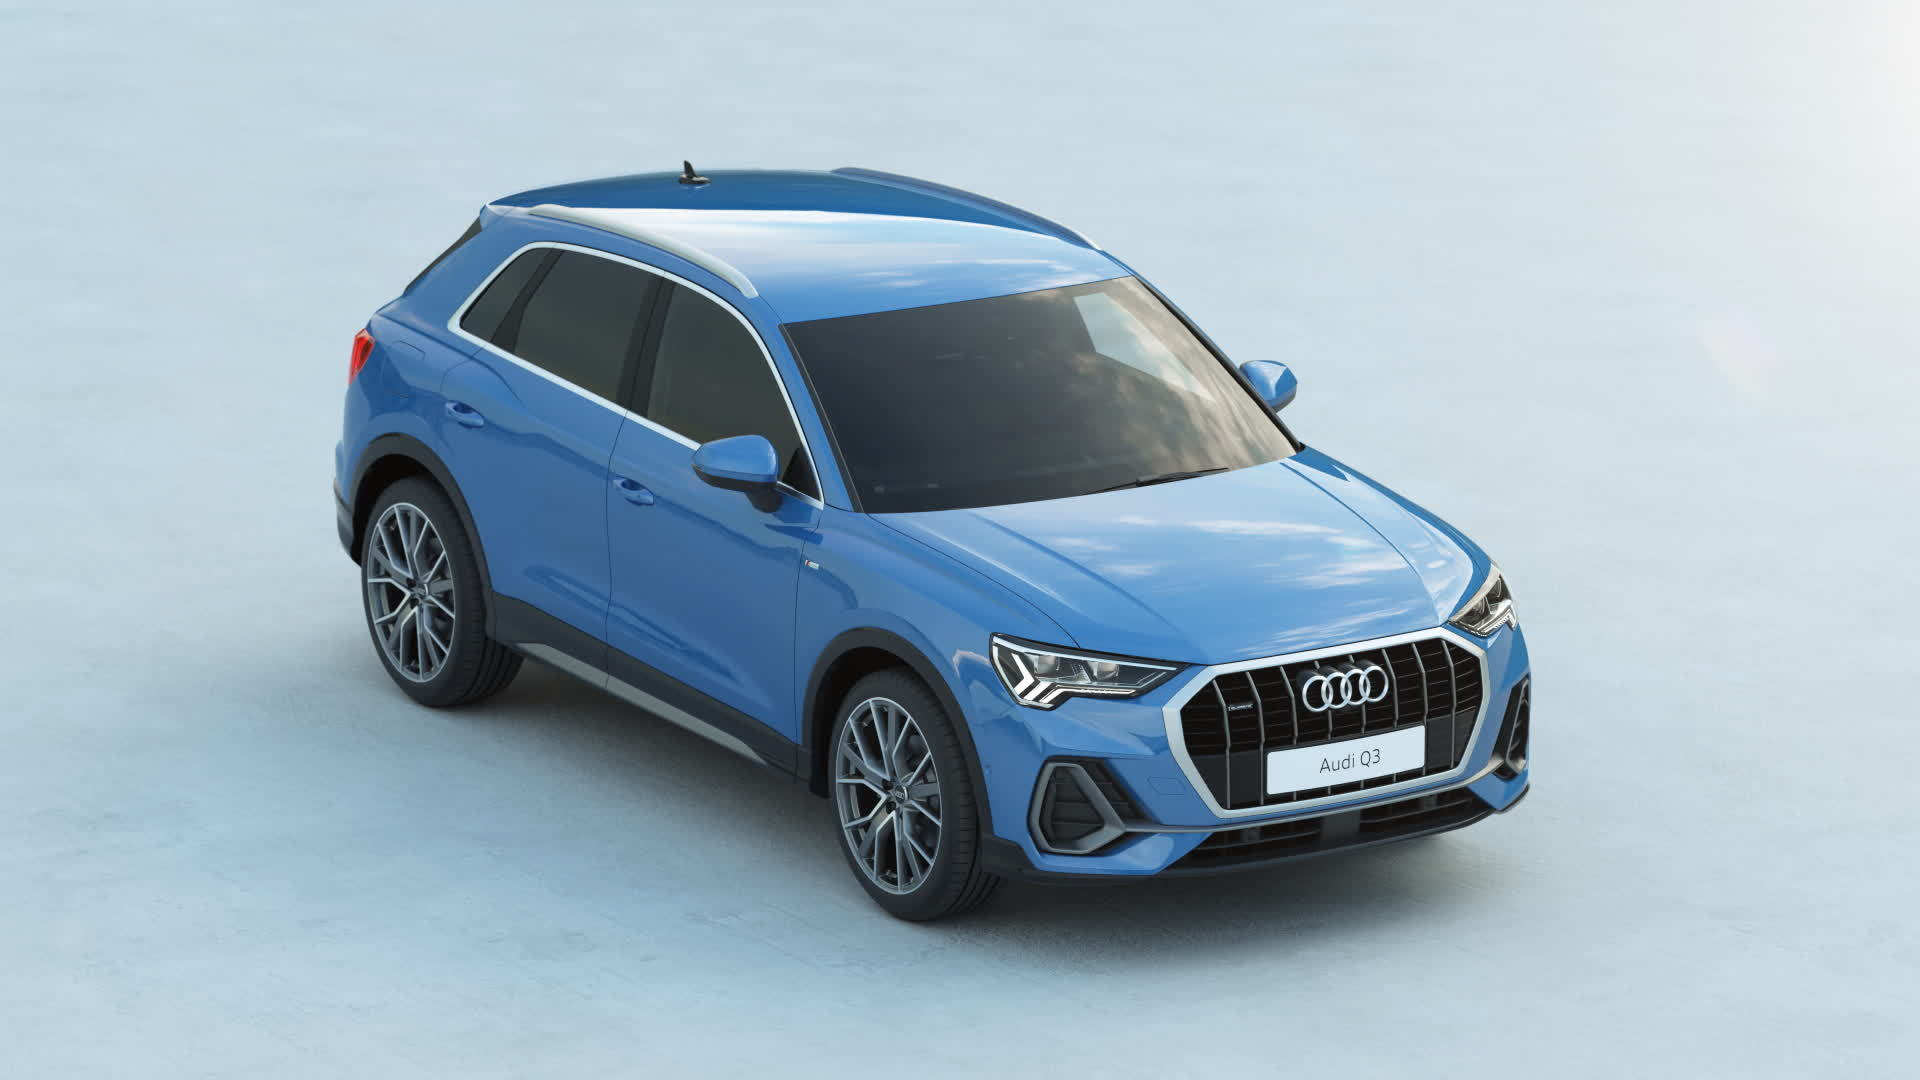 Audi Q3 exterior design (Animation)